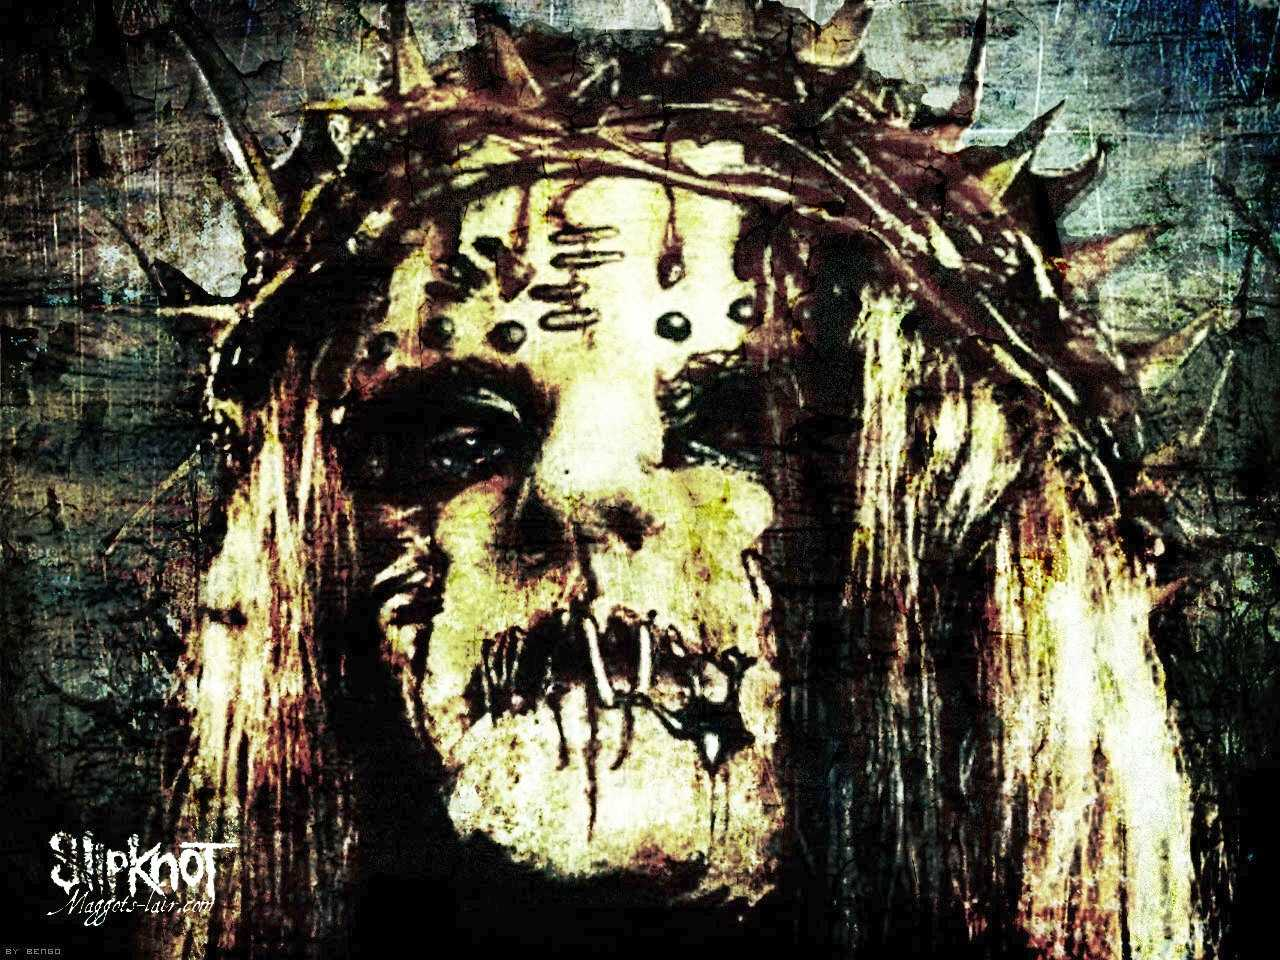 Joey jordison style favor photos pictures and wallpapers for - Images For Joey Jordison Wallpaper